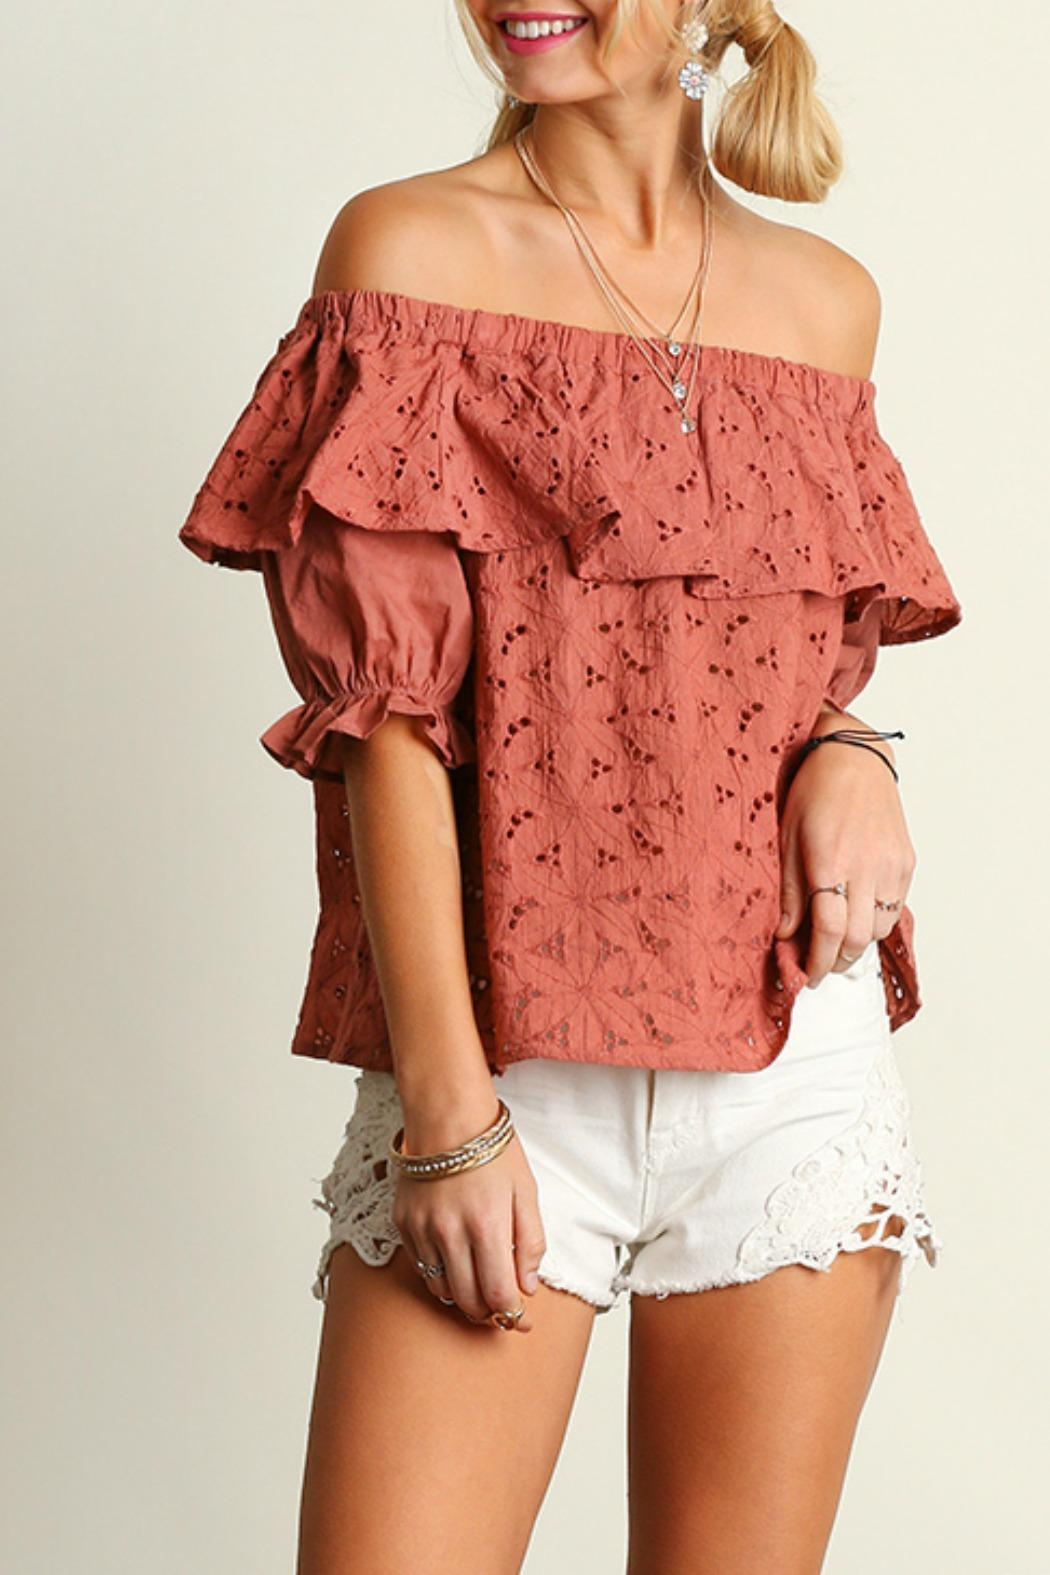 39f321dc7c2b7 Umgee USA Babydoll Off-The-Shoulder Top from Tennessee by Rustic ...